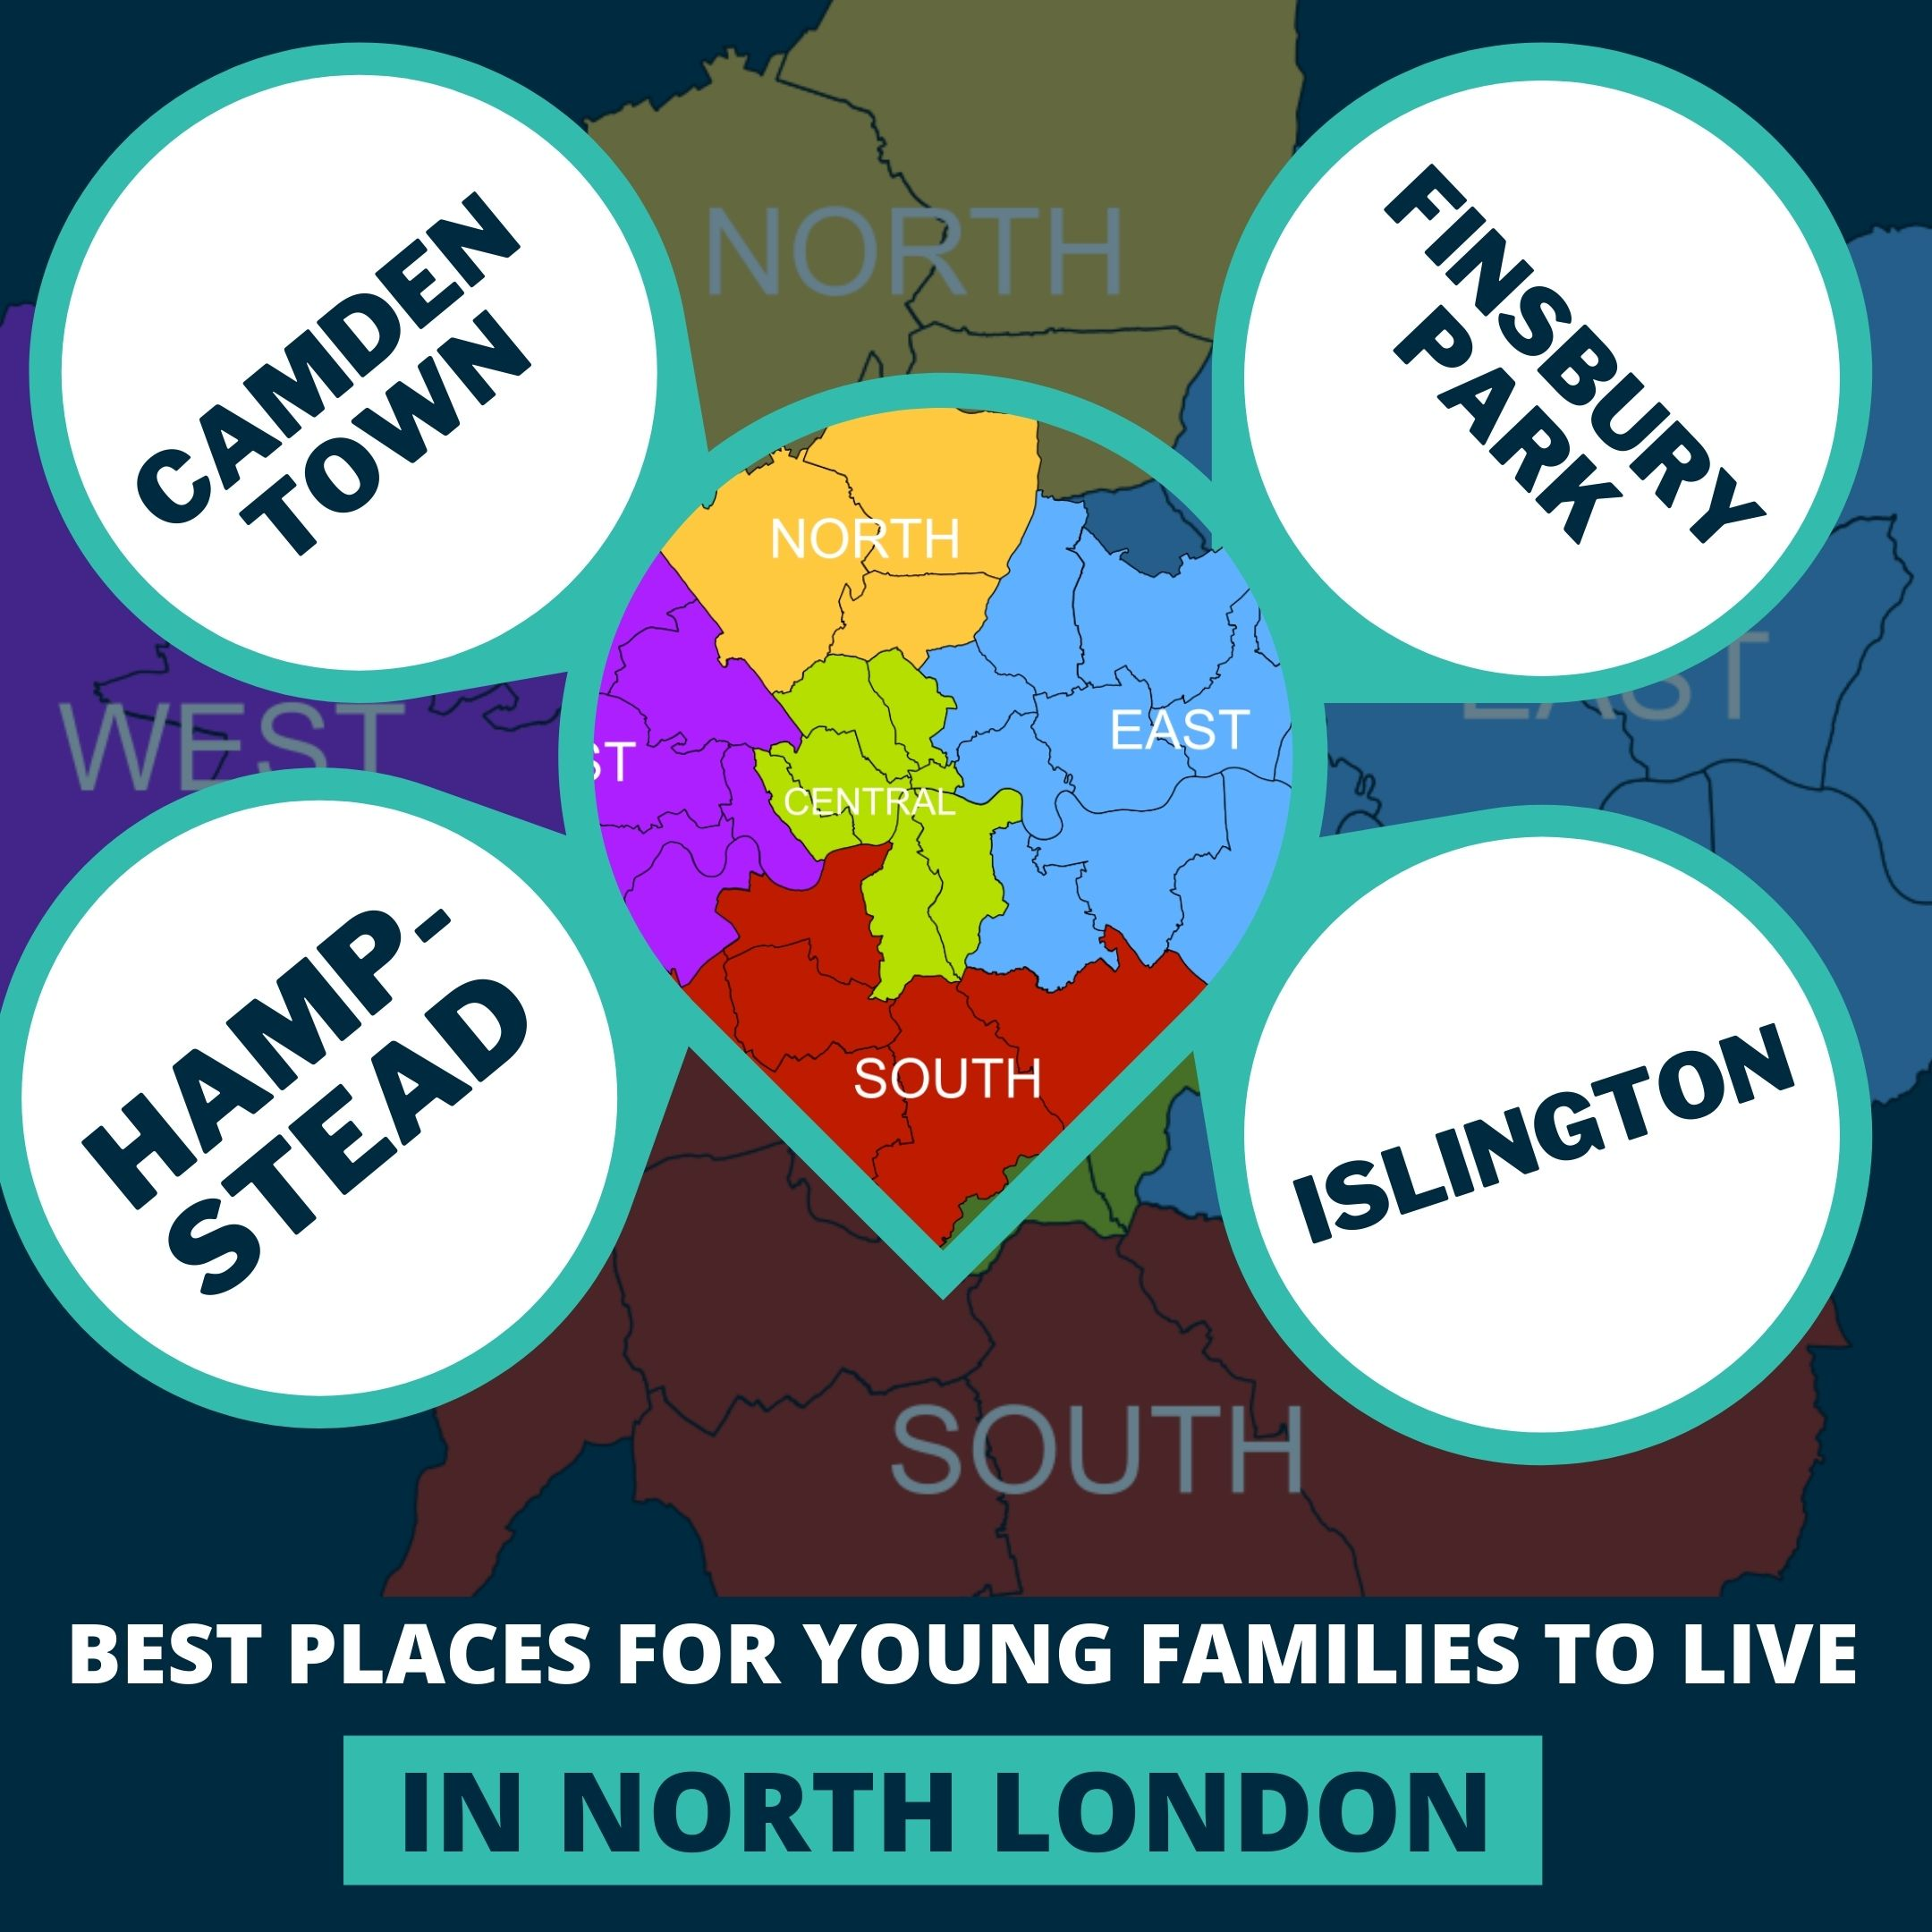 BEST PLACES FOR YOUNG FAMILIES TO LIVE IN NORTH LONDON